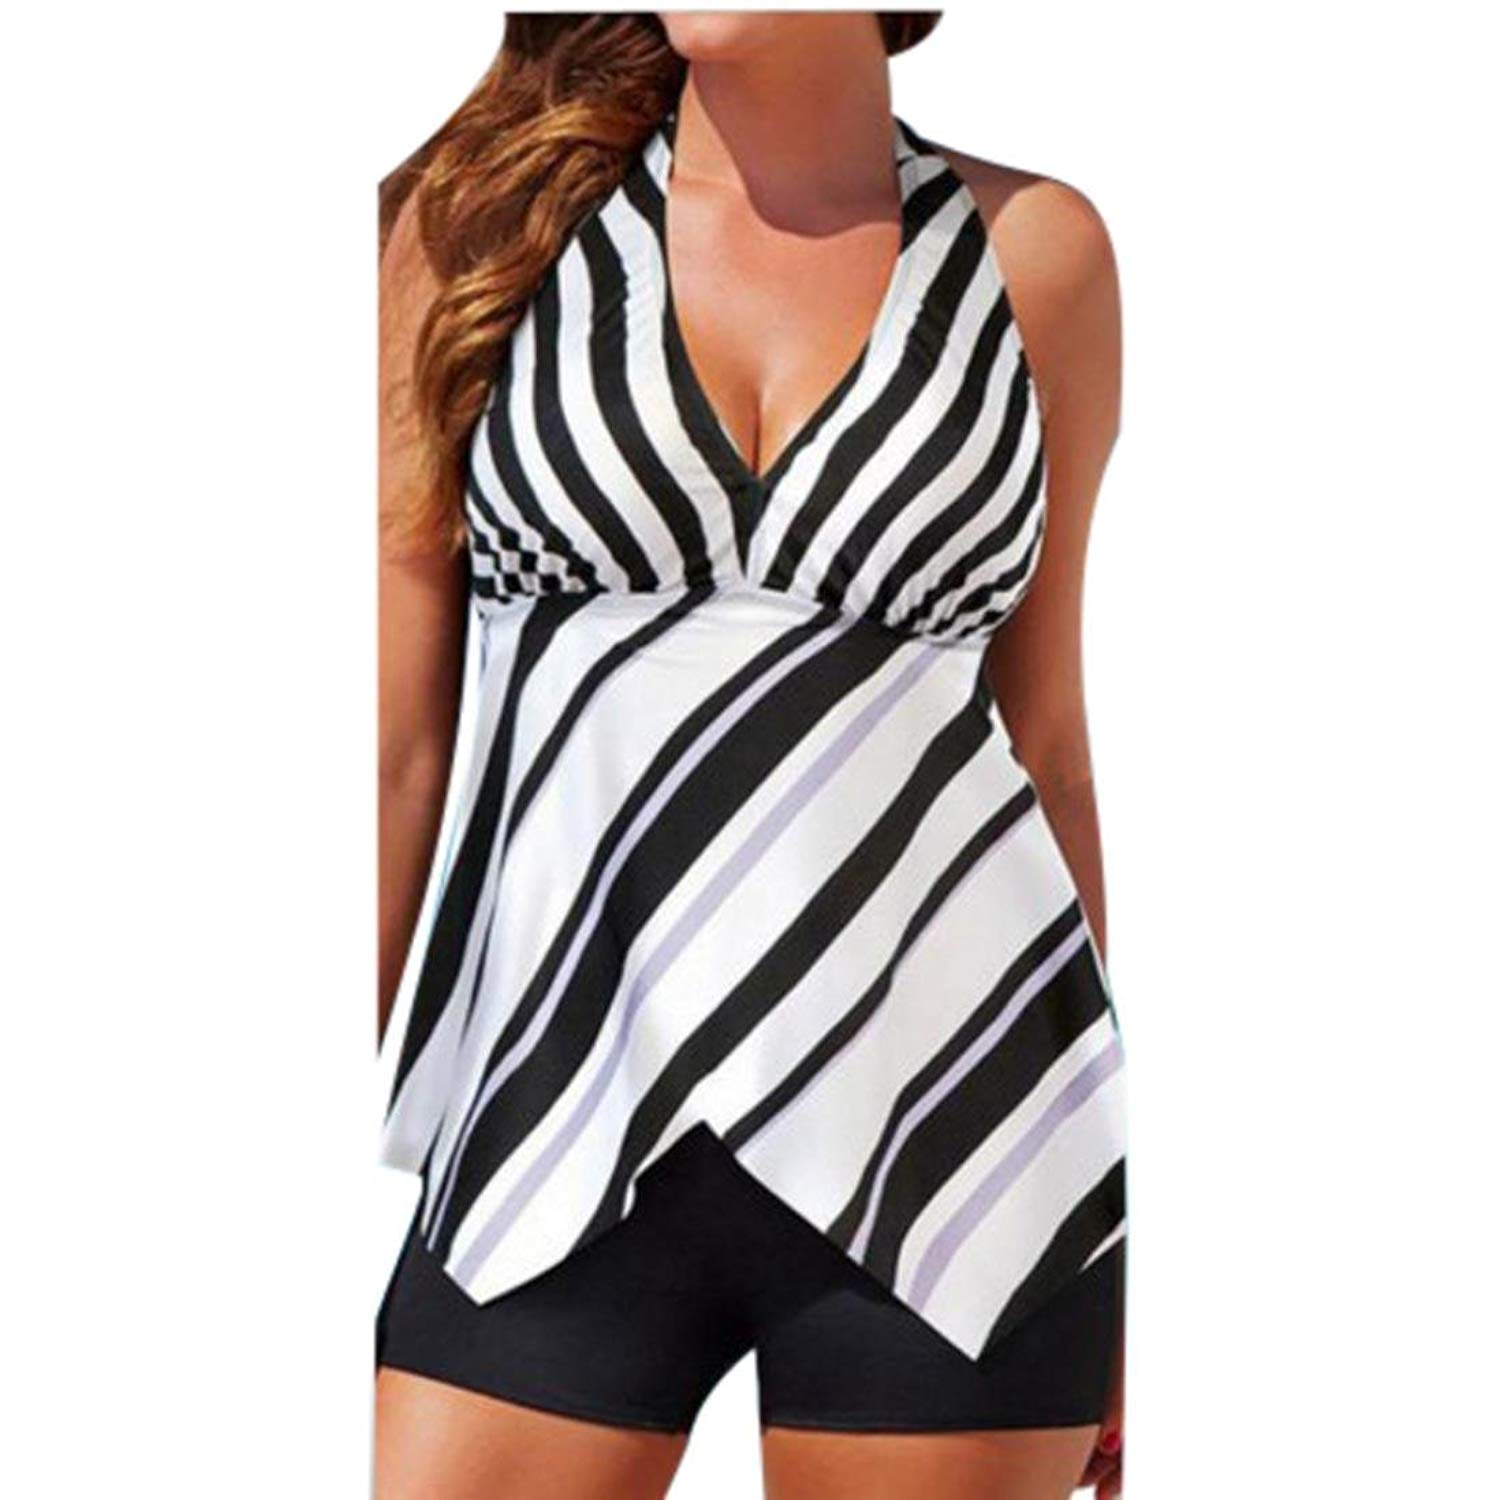 f5f63505aefa1 Get Quotations · Women Tankini Sets with Boy Shorts Ladies Swimming  Costumes Two Piece Swimsuits